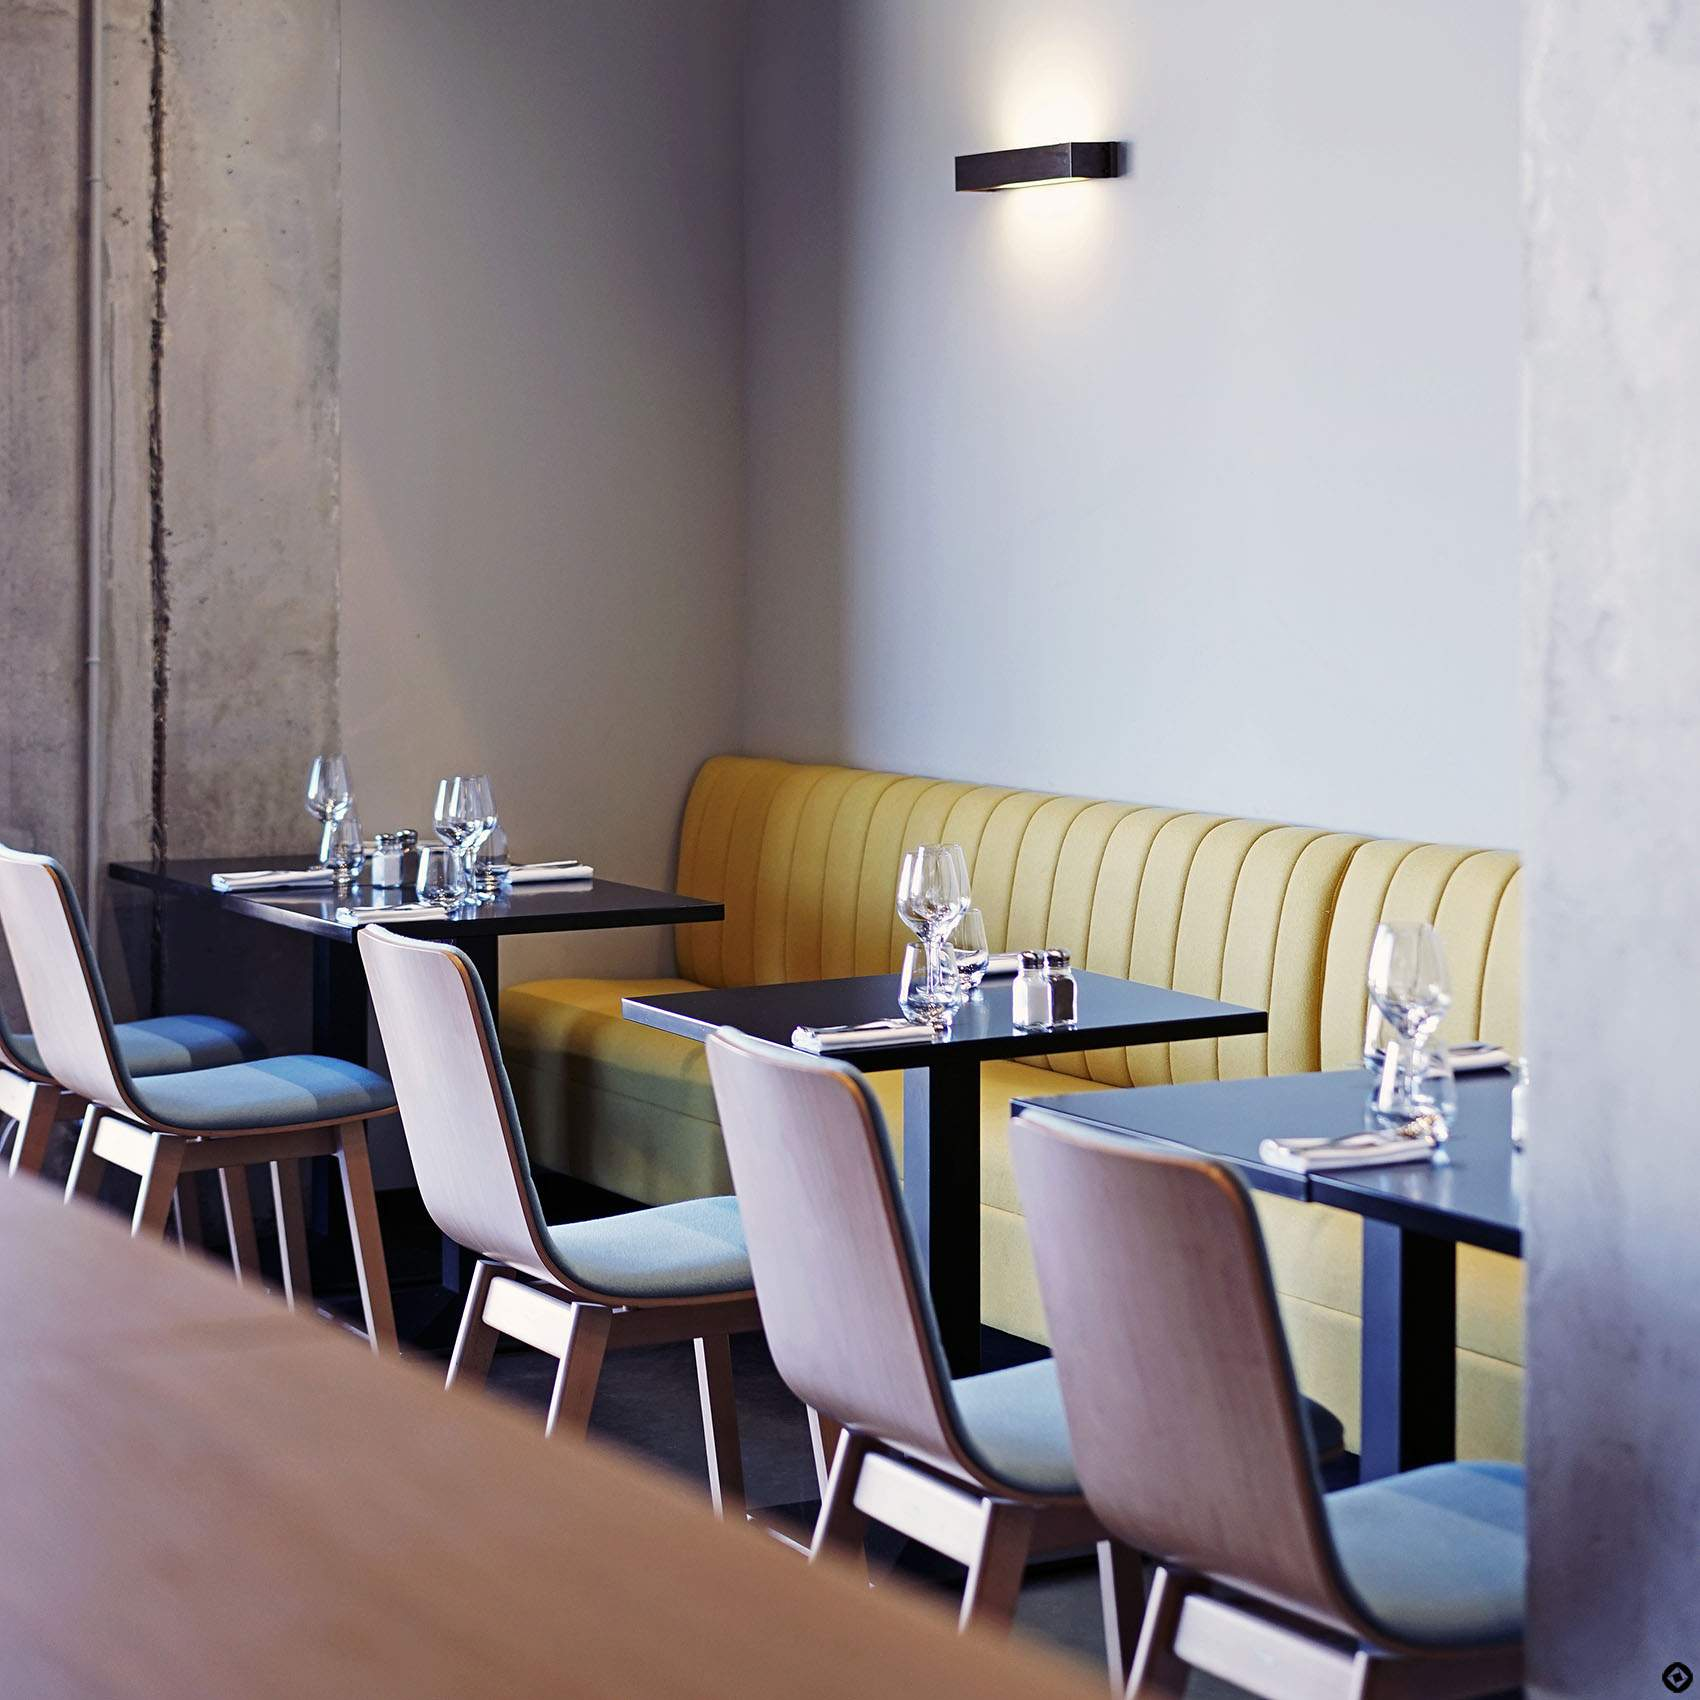 blog_restaurant-design-lembarcardere-marseille-5